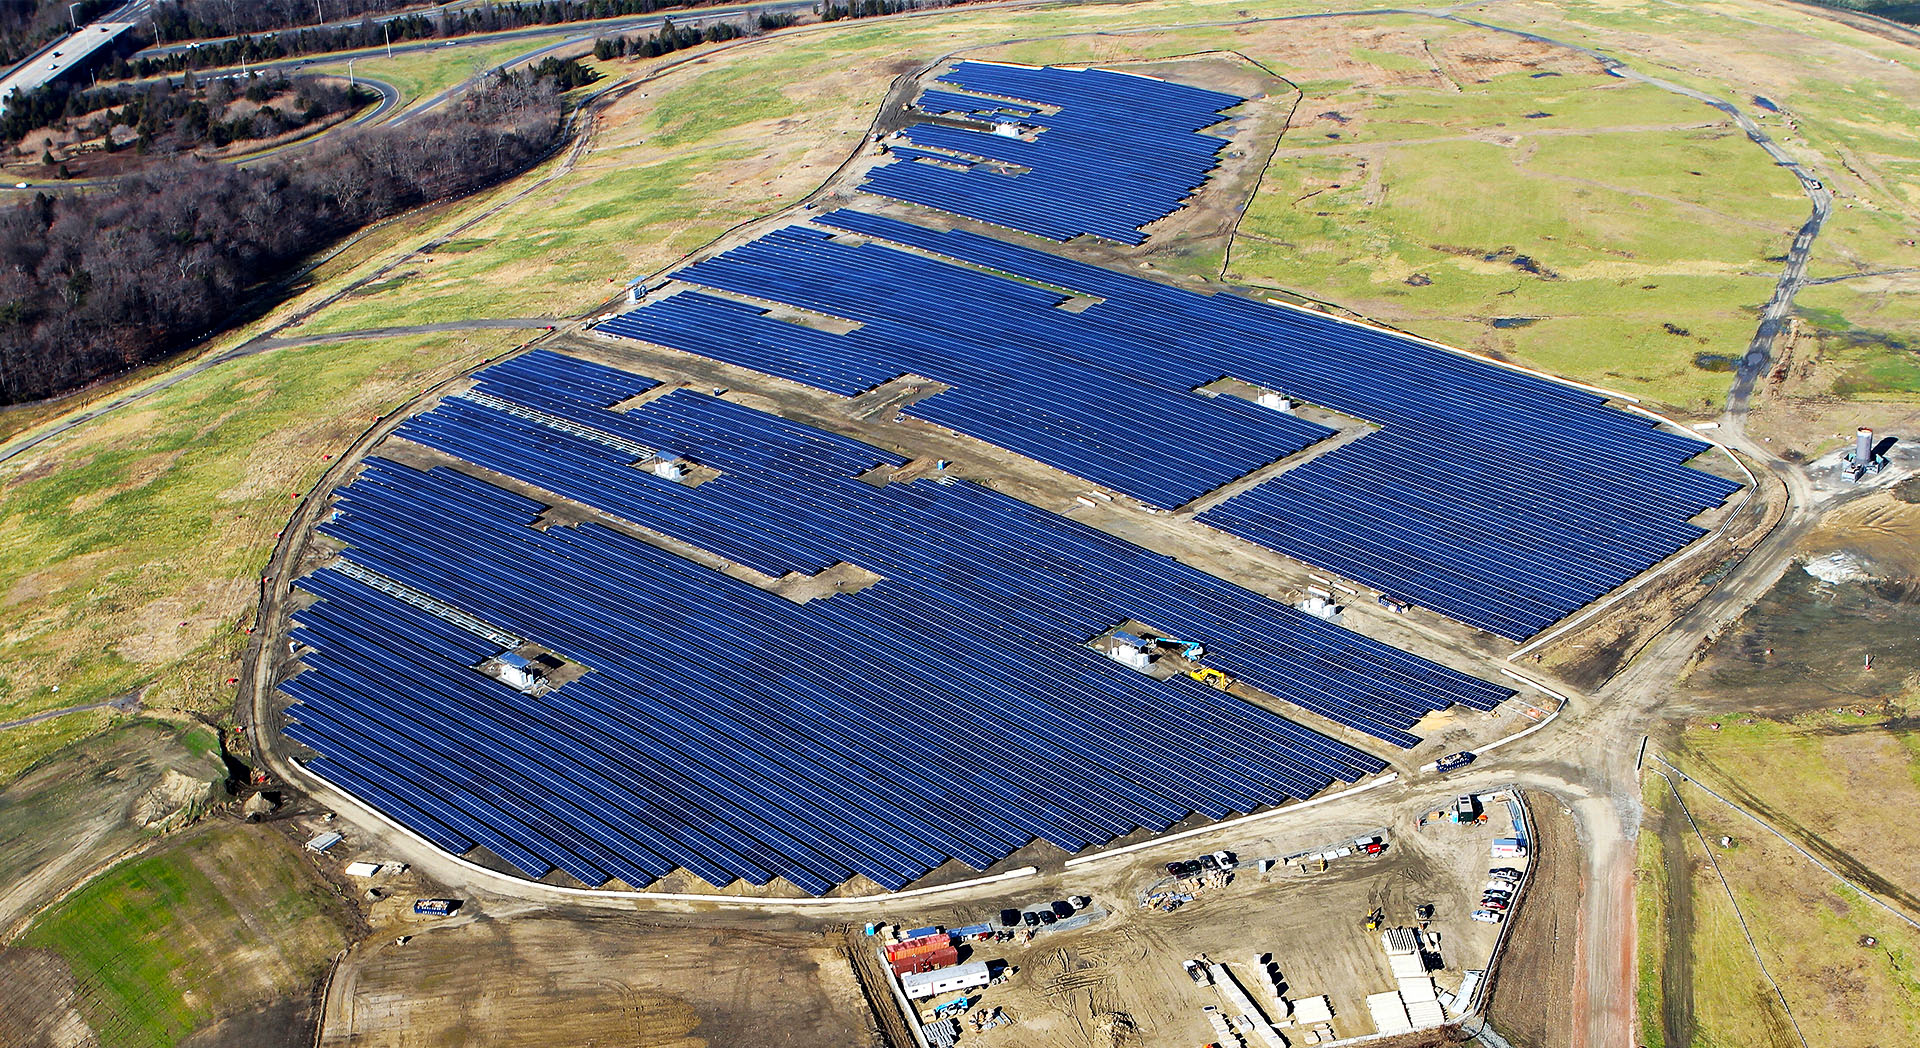 Landfill Solar Systems Commissioned for PSE&G Program